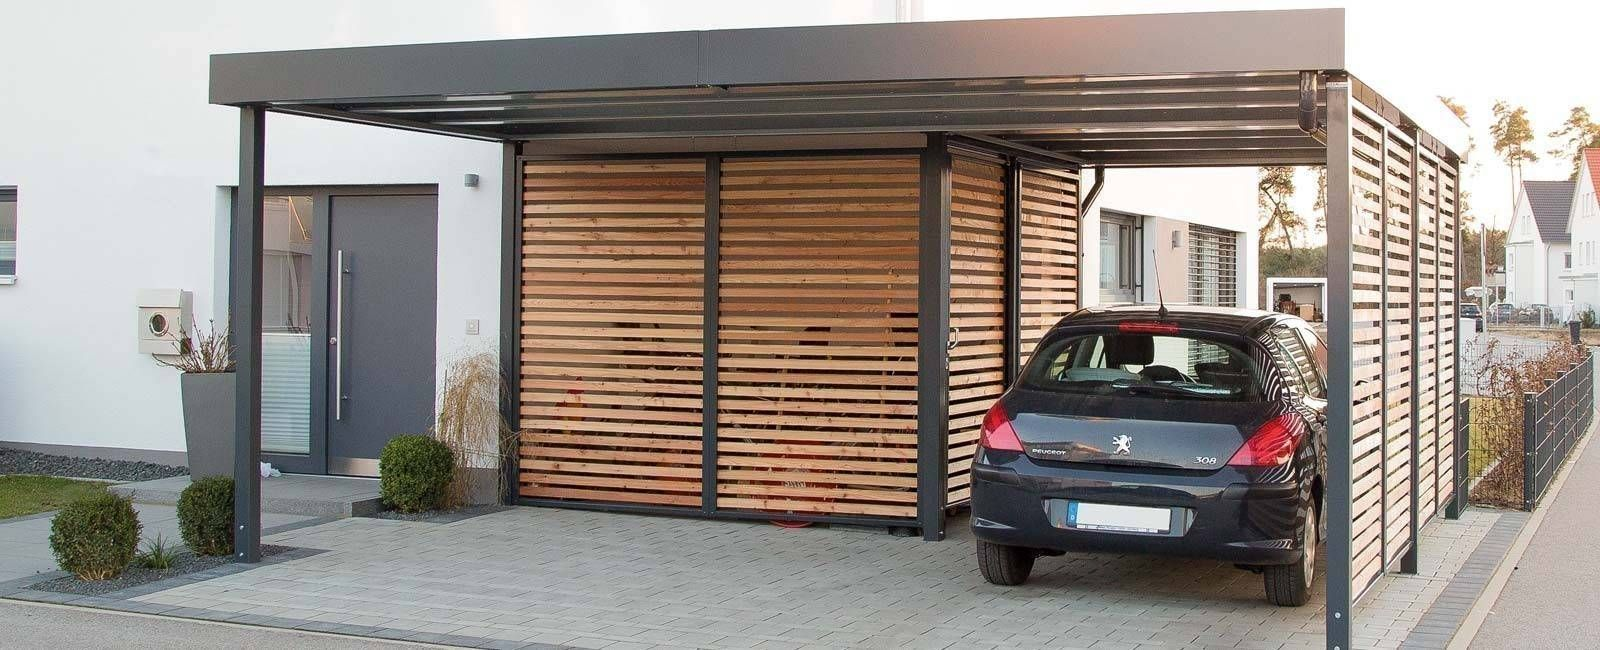 carport mit integriertem ger teraum moderne garage schuppen von haus pinterest carport. Black Bedroom Furniture Sets. Home Design Ideas